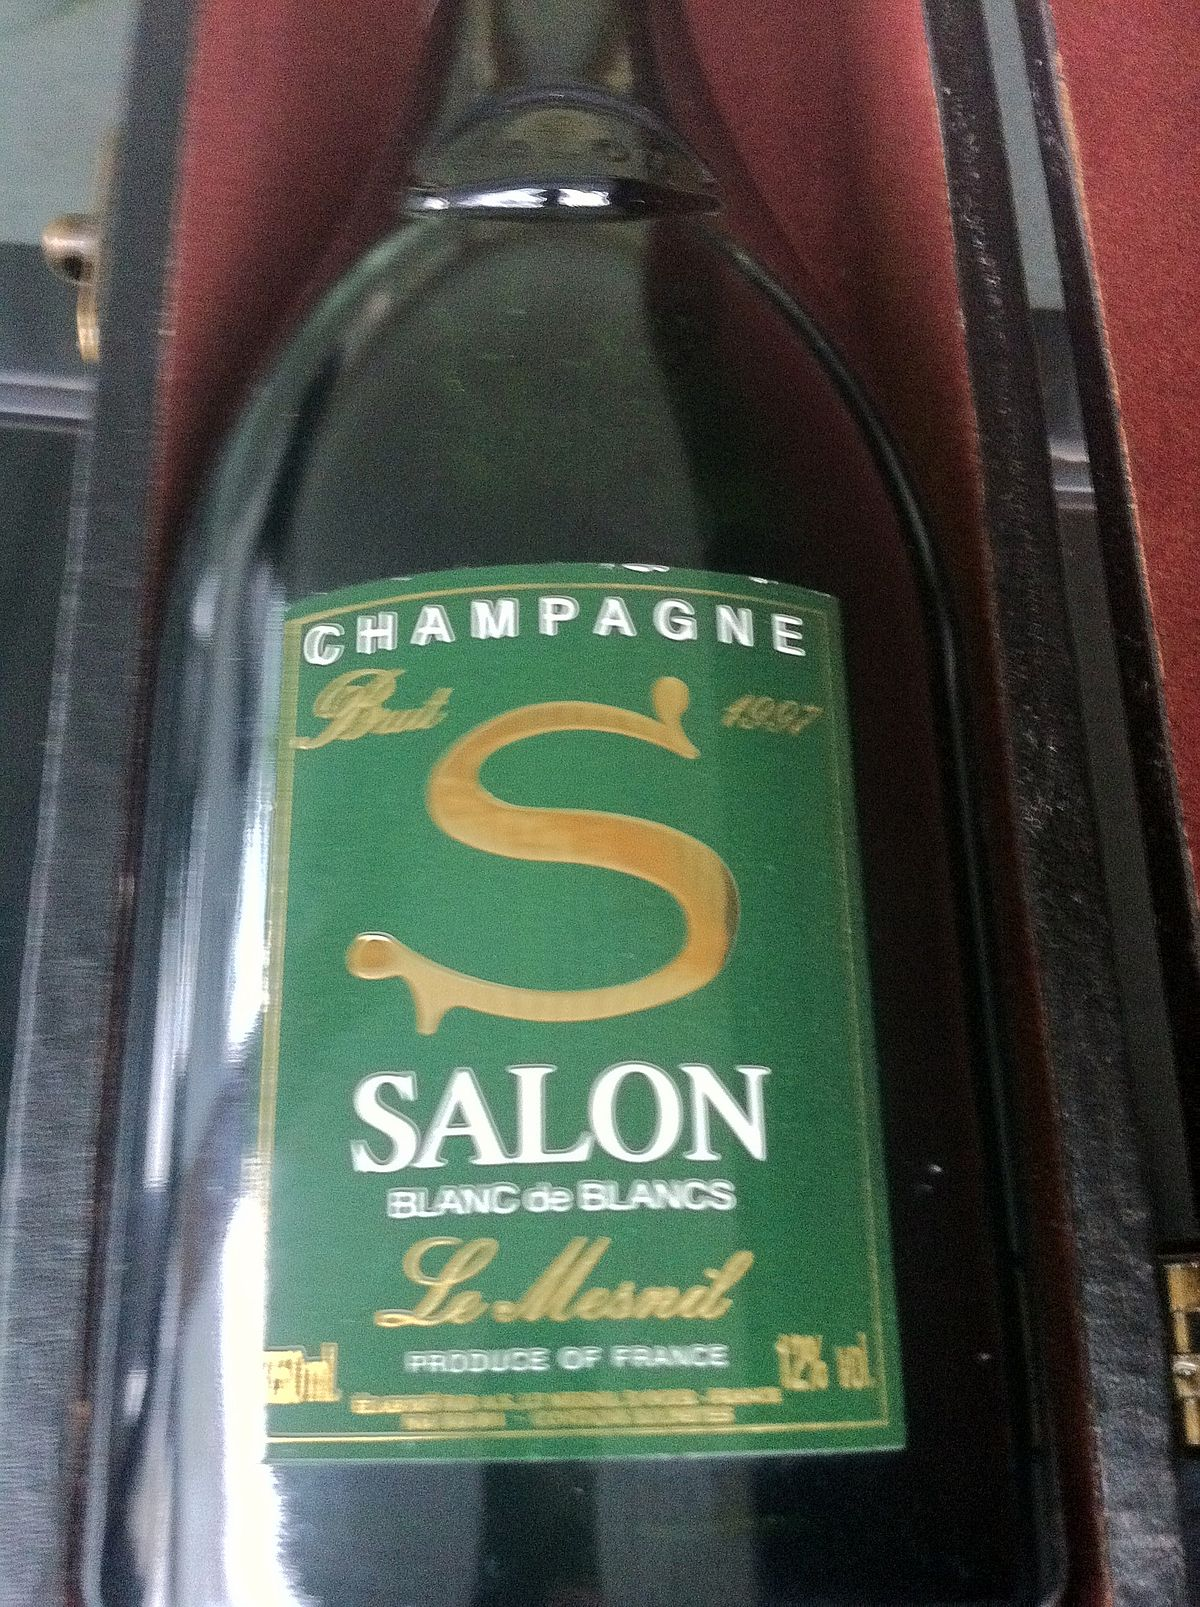 Champagne Salon - Wikipedia